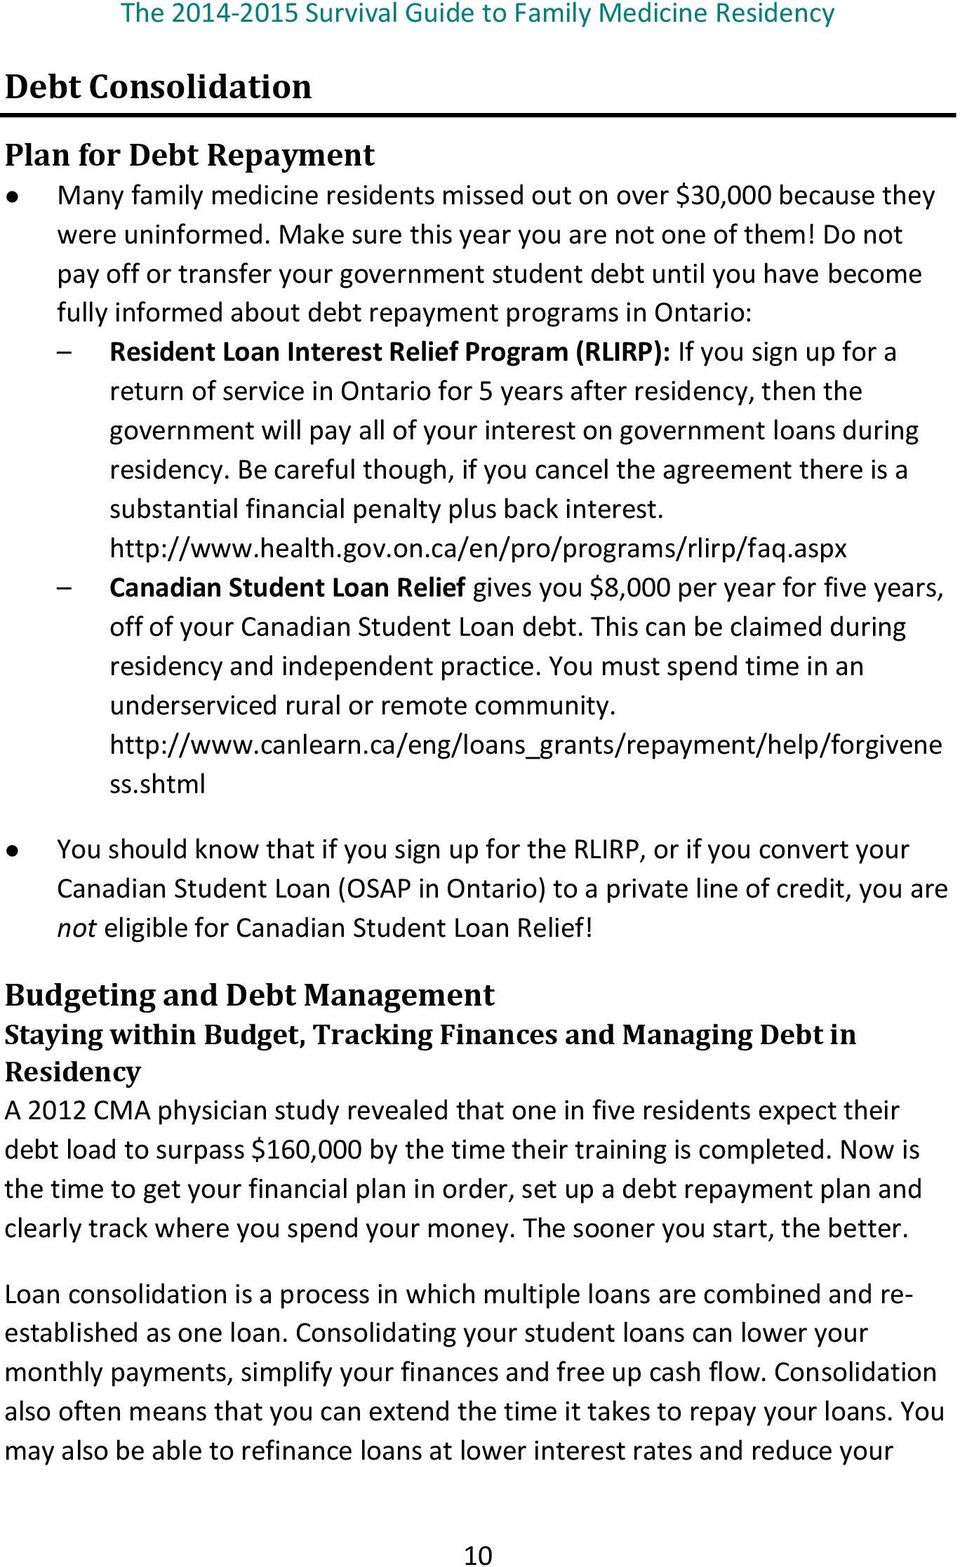 for a return of service in Ontario for 5 years after residency, then the government will pay all of your interest on government loans during residency.